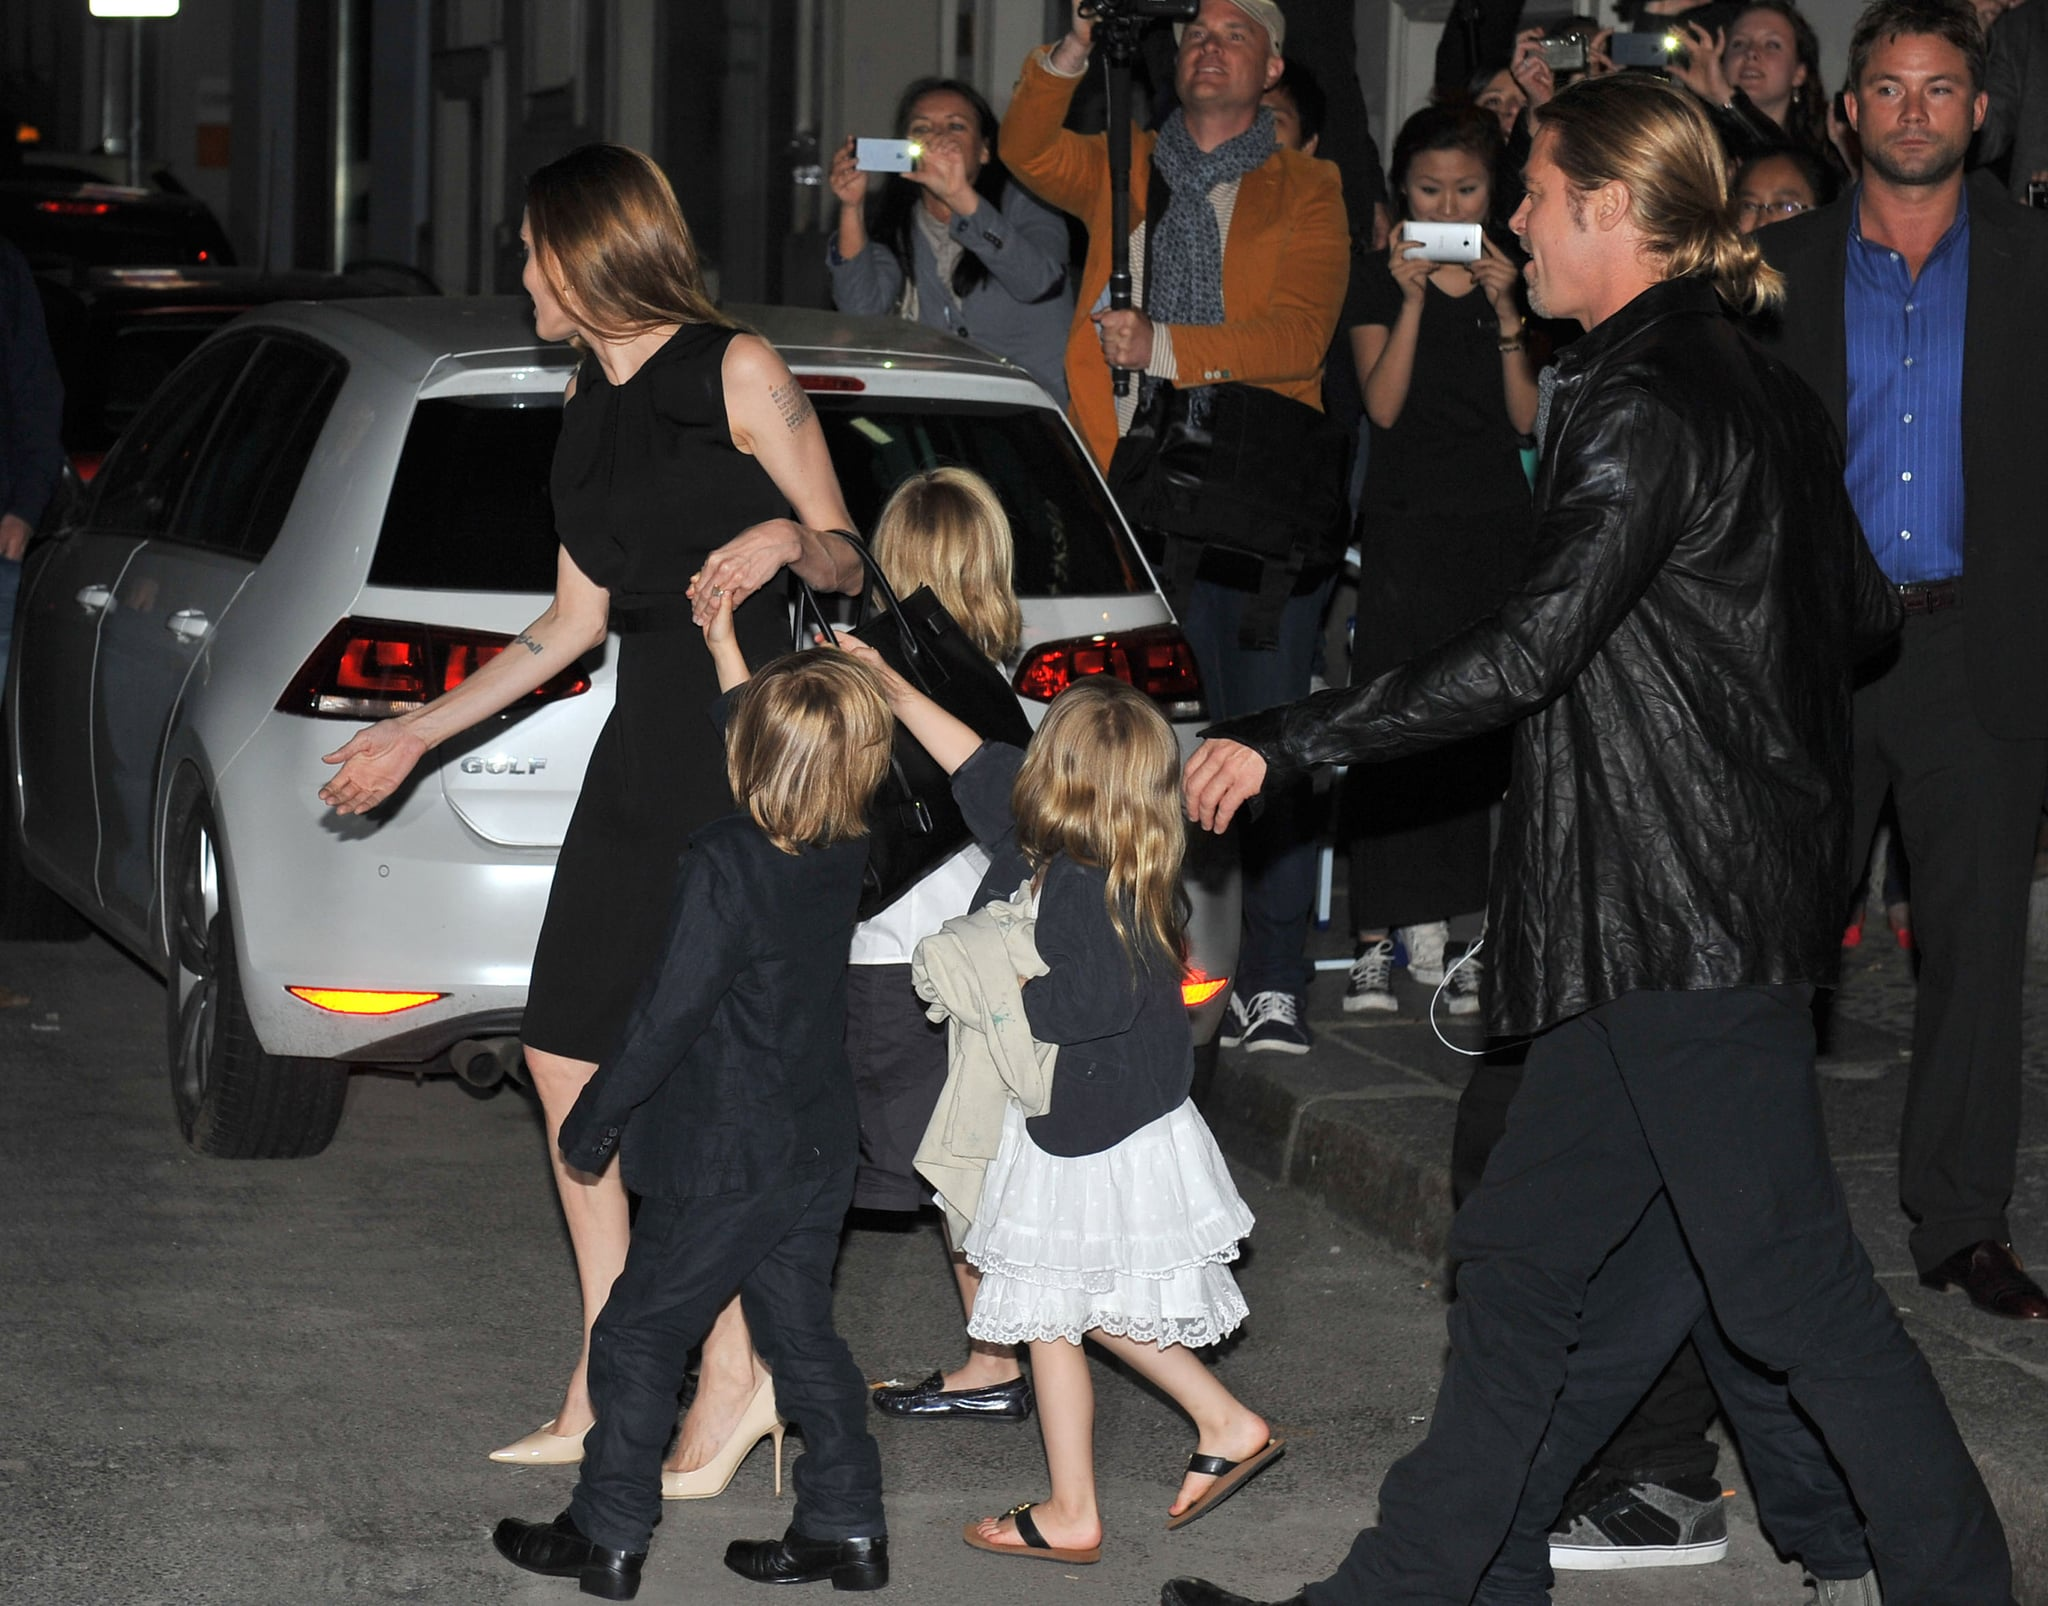 Brad Pitt and Angelina Jolie brought the twins, Vivienne Jolie-Pitt and Knox Jolie-Pitt, to Berlin for Brad Pitt's World War Z tour in June.